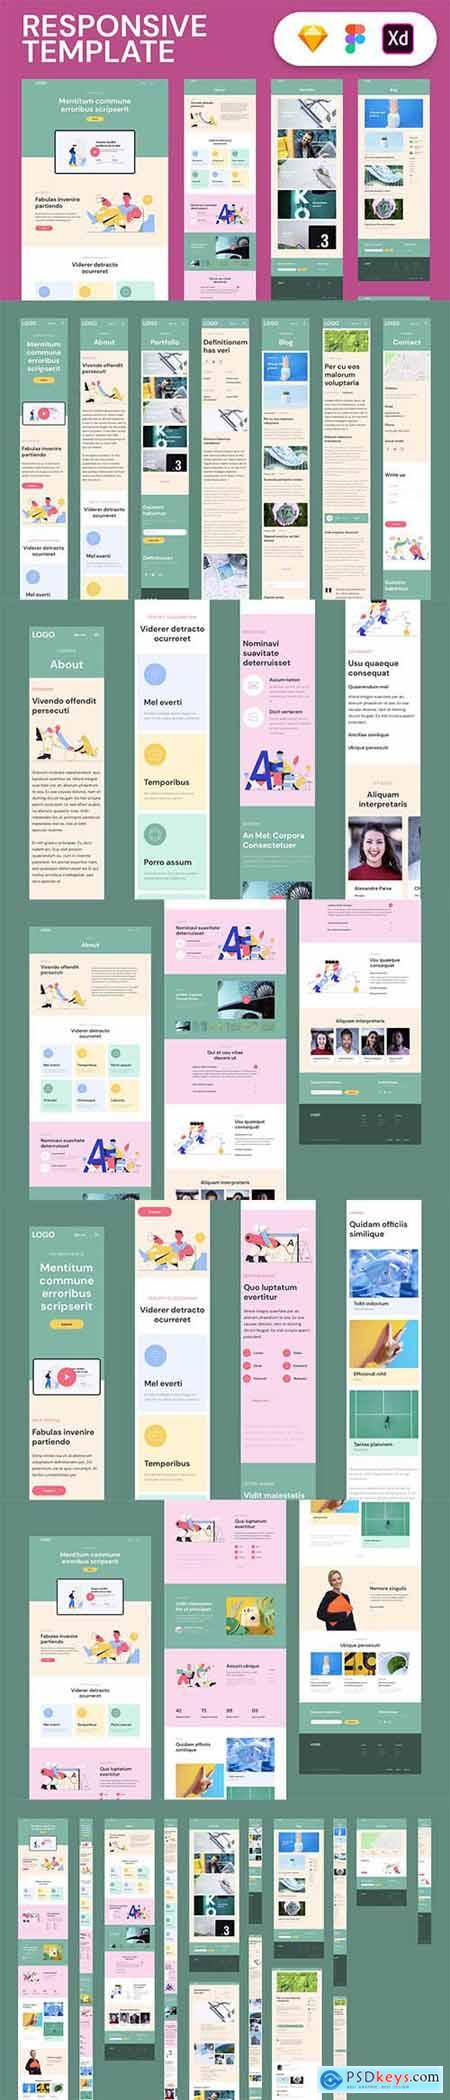 Responsive Template